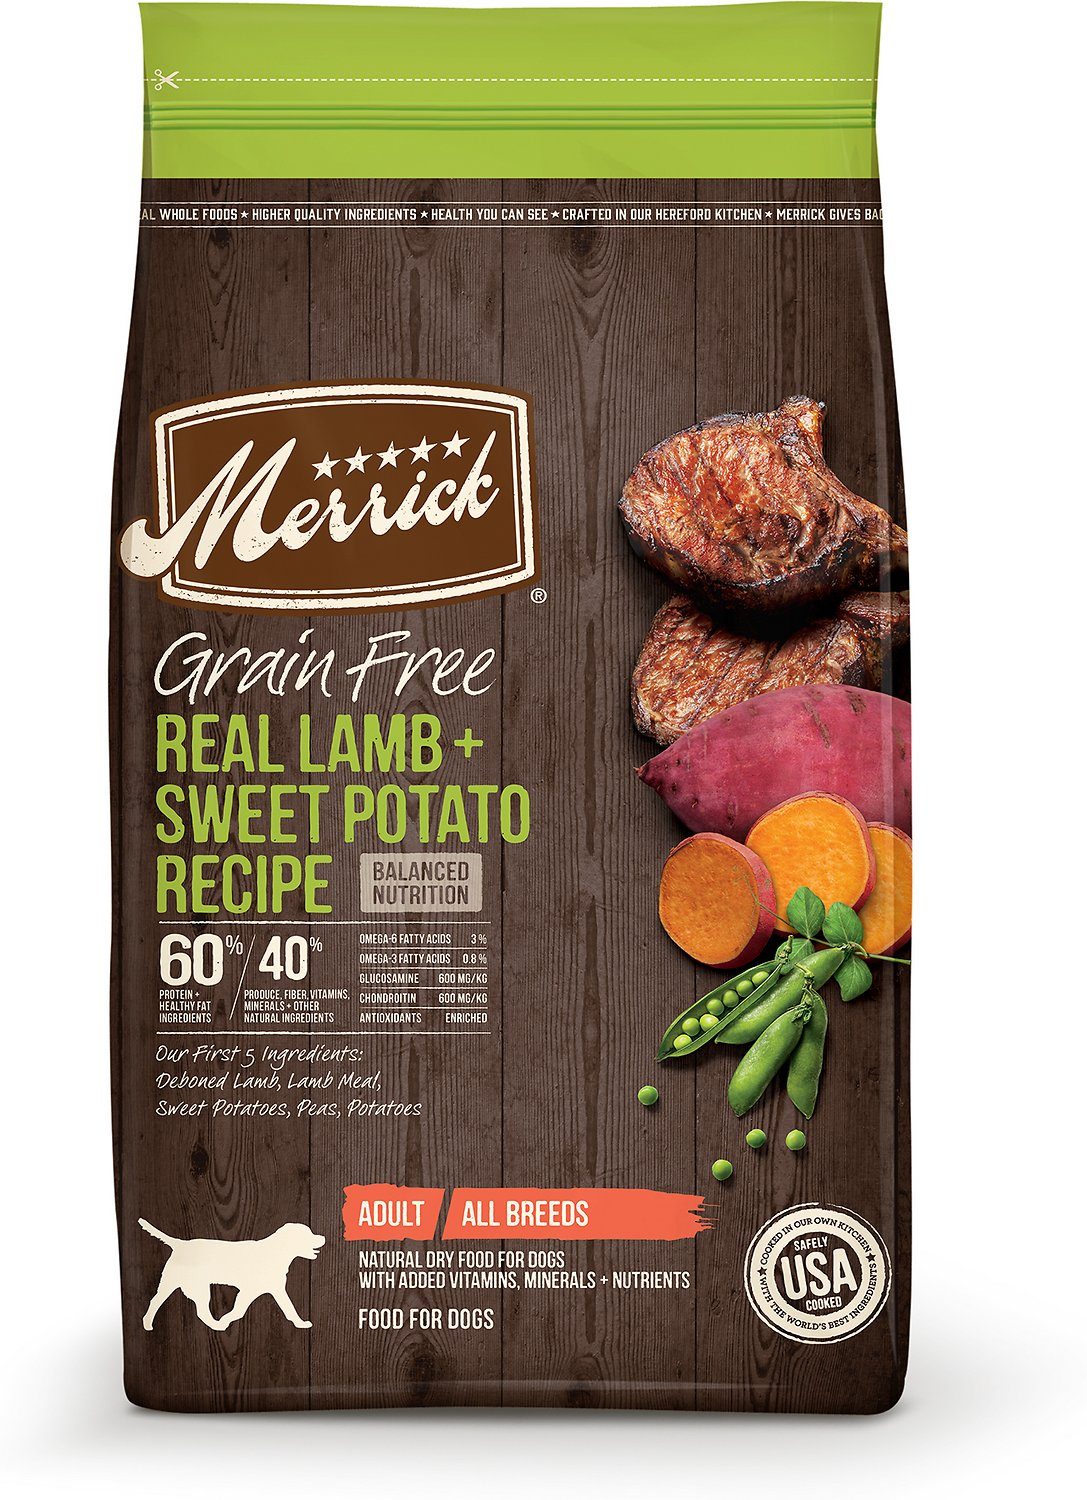 Merrick Grain-Free Real Lamb + Sweet Potato Recipe Dry Dog Food Image